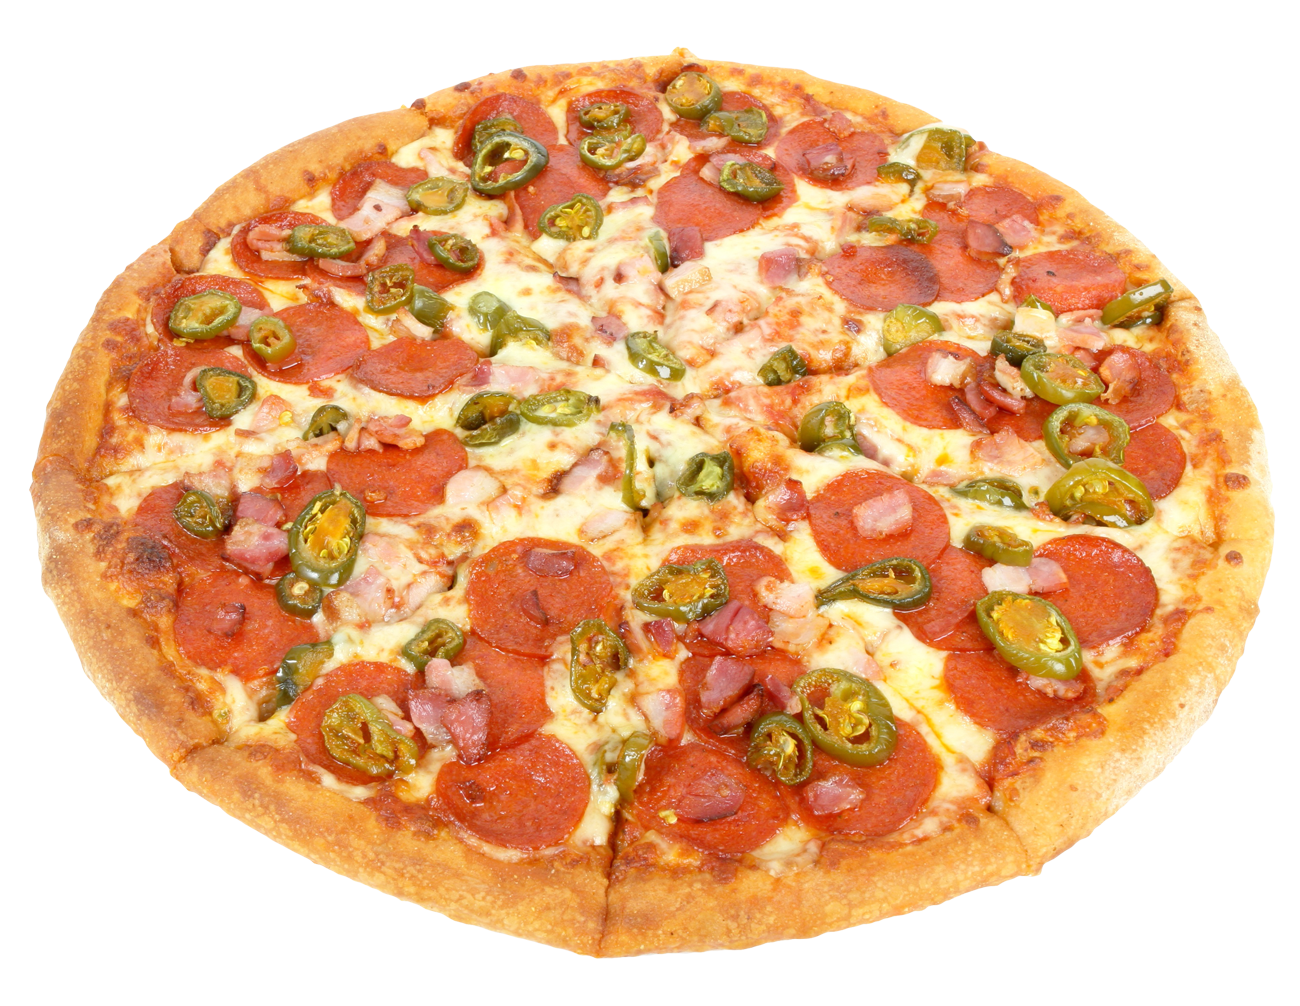 Pizza PNG - 20170